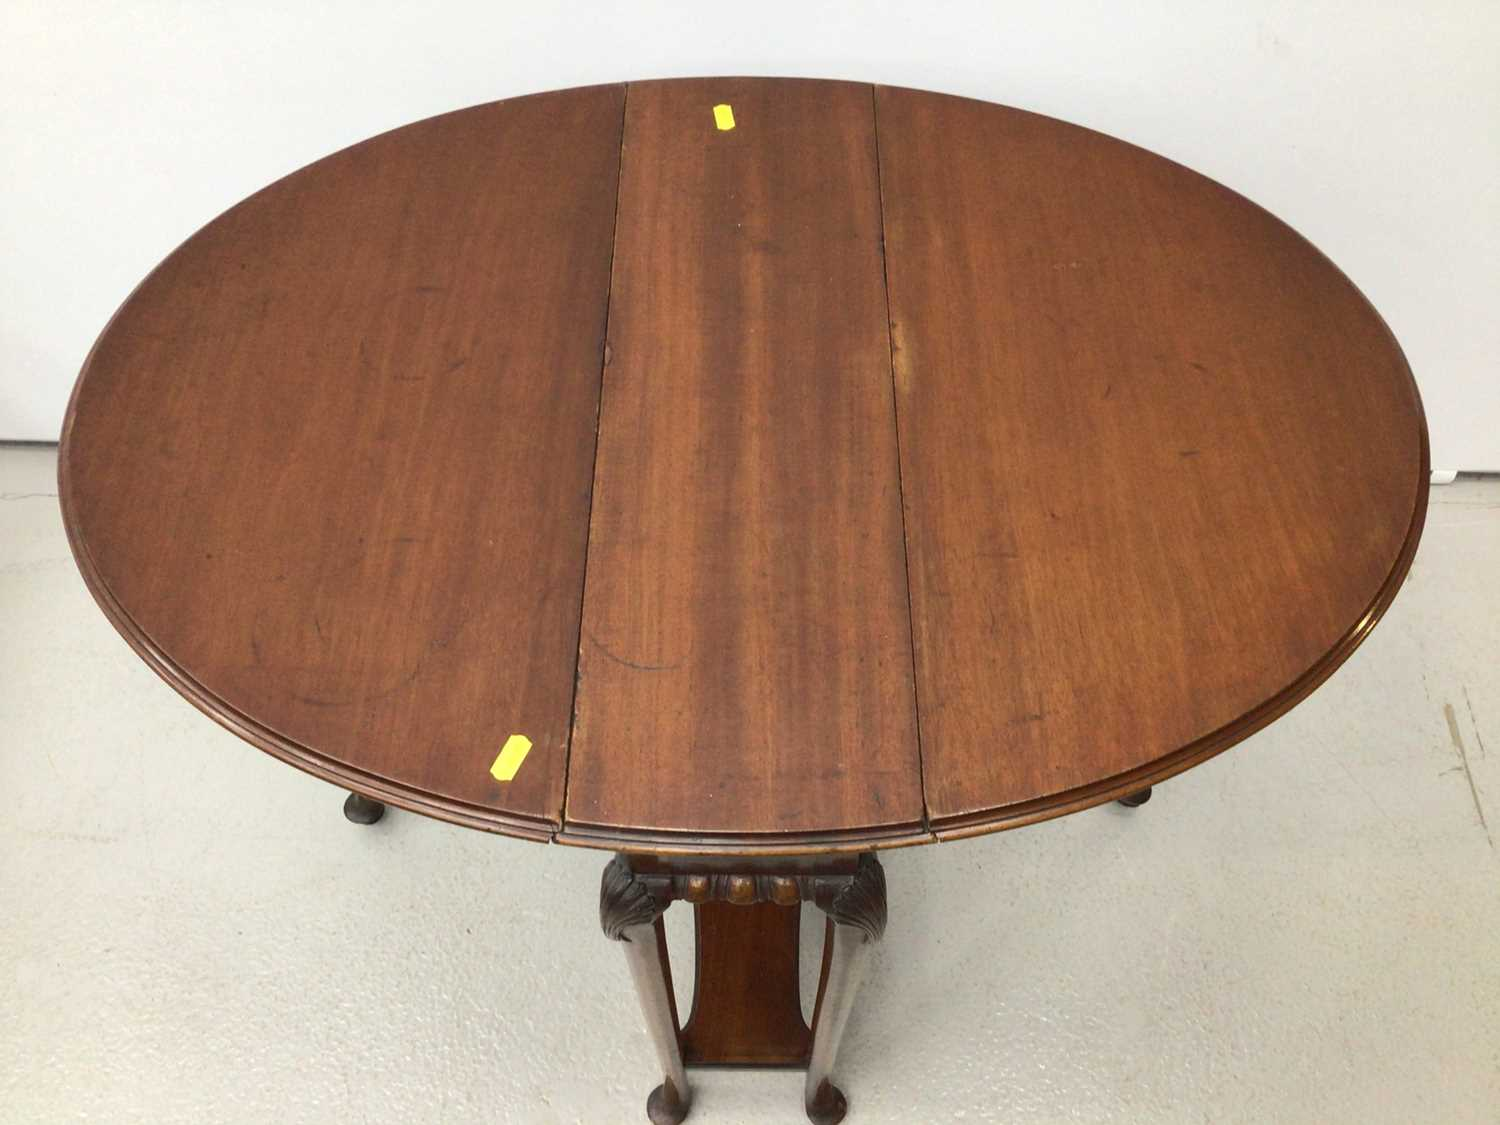 Mahogany oval Sutherland table on turned legs, 61cm opening to 83cm x 68cm high - Image 2 of 5